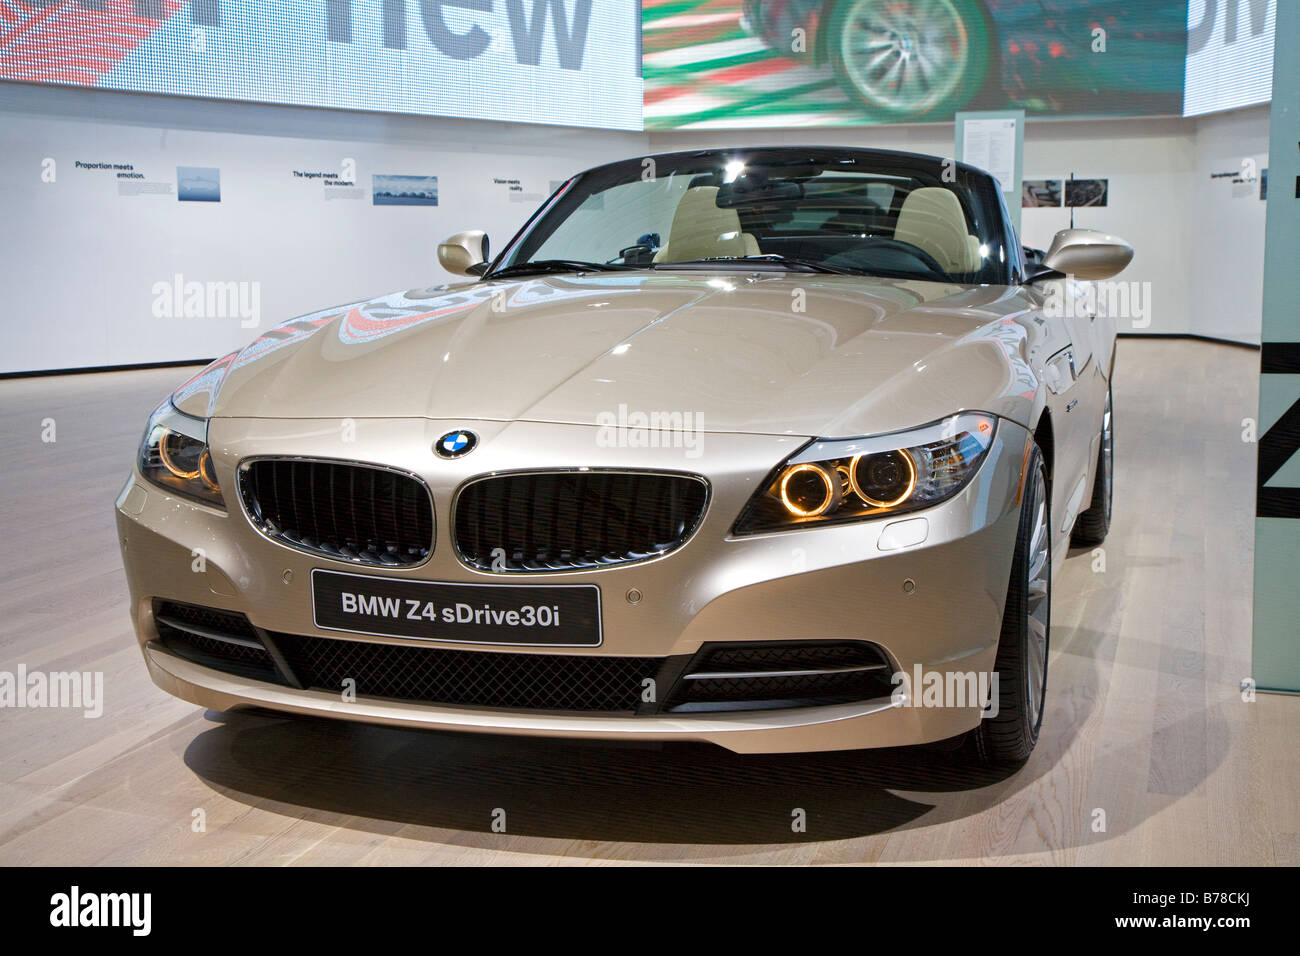 Detroit Michigan The BMW Z4 Roadster on display at the North American International Auto Show Stock Photo